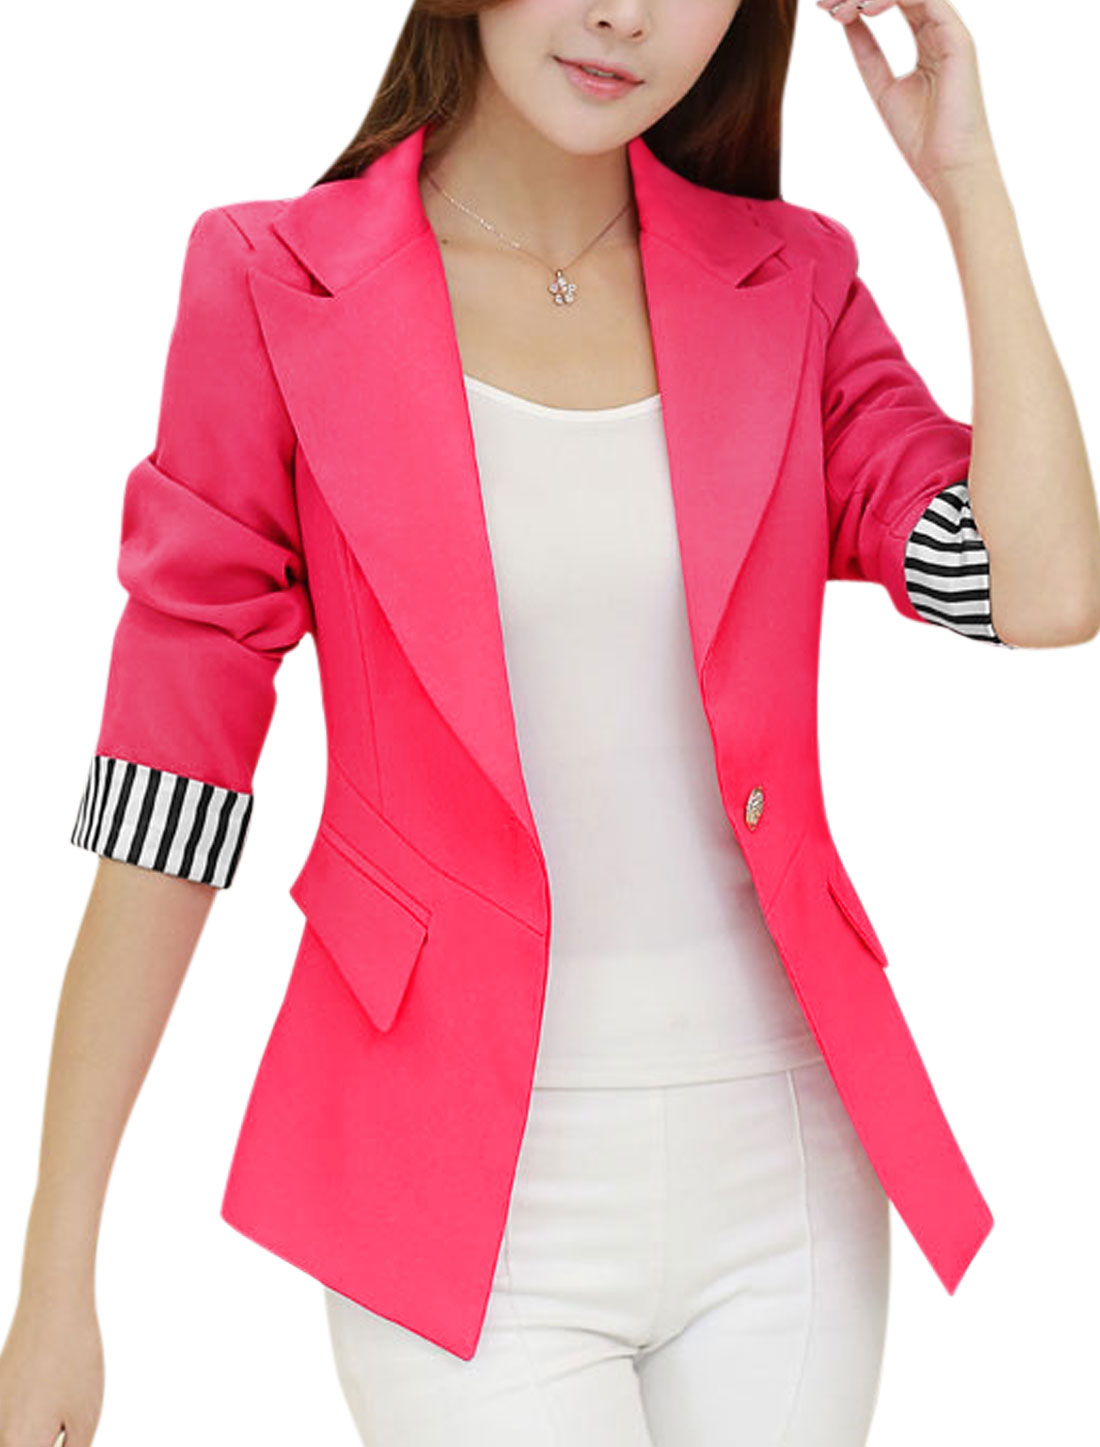 Ladies Button Closed Long Sleeves Slim Fuchsia Blazer Jacket L